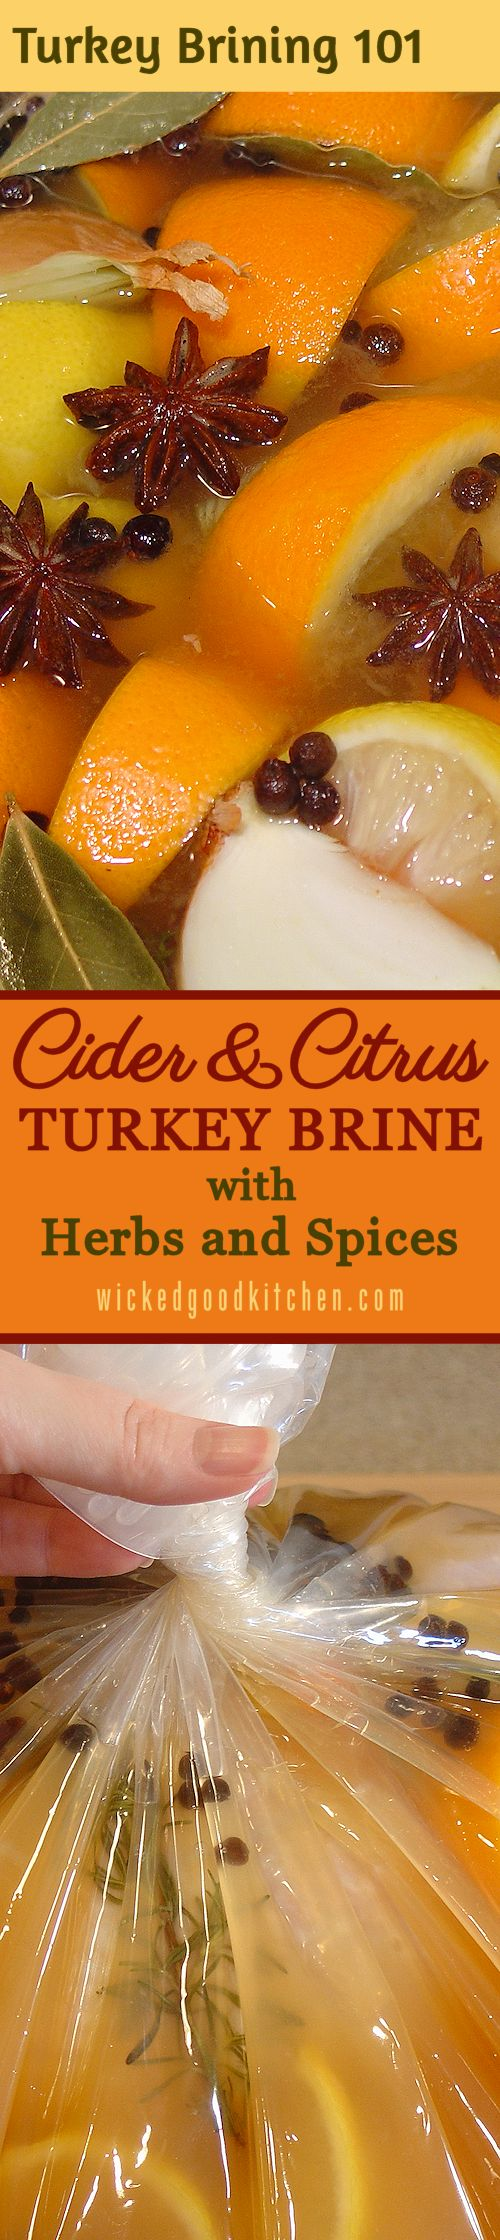 Apple Cider & Citrus Turkey Brine with Herbs and Spices ~  An exceptional turkey brine consisting of both apple cider and citrus juices as well as herbs and spices with just the right amount of salt to ensure a tender, juicy roasted holiday turkey! Includes TURKEY BRINING 101: How-To Tutorial with Step-by-Step Photos & Tips. | #Christmas #Thanksgiving #Holidays diy recipe